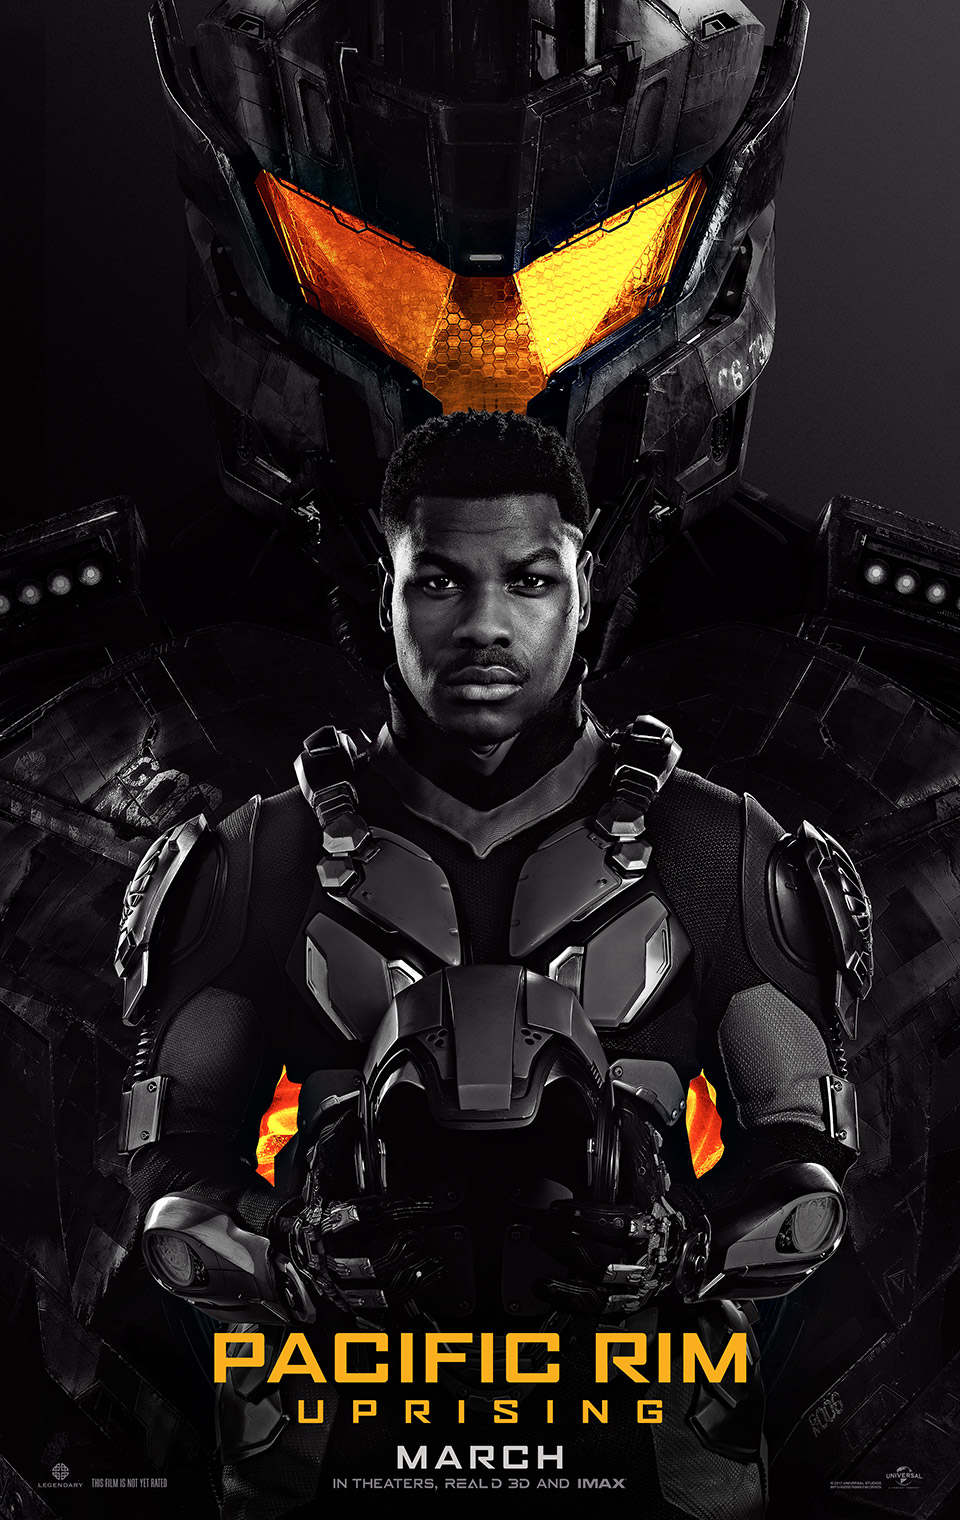 Pacific Rim Uprising (Trailer)